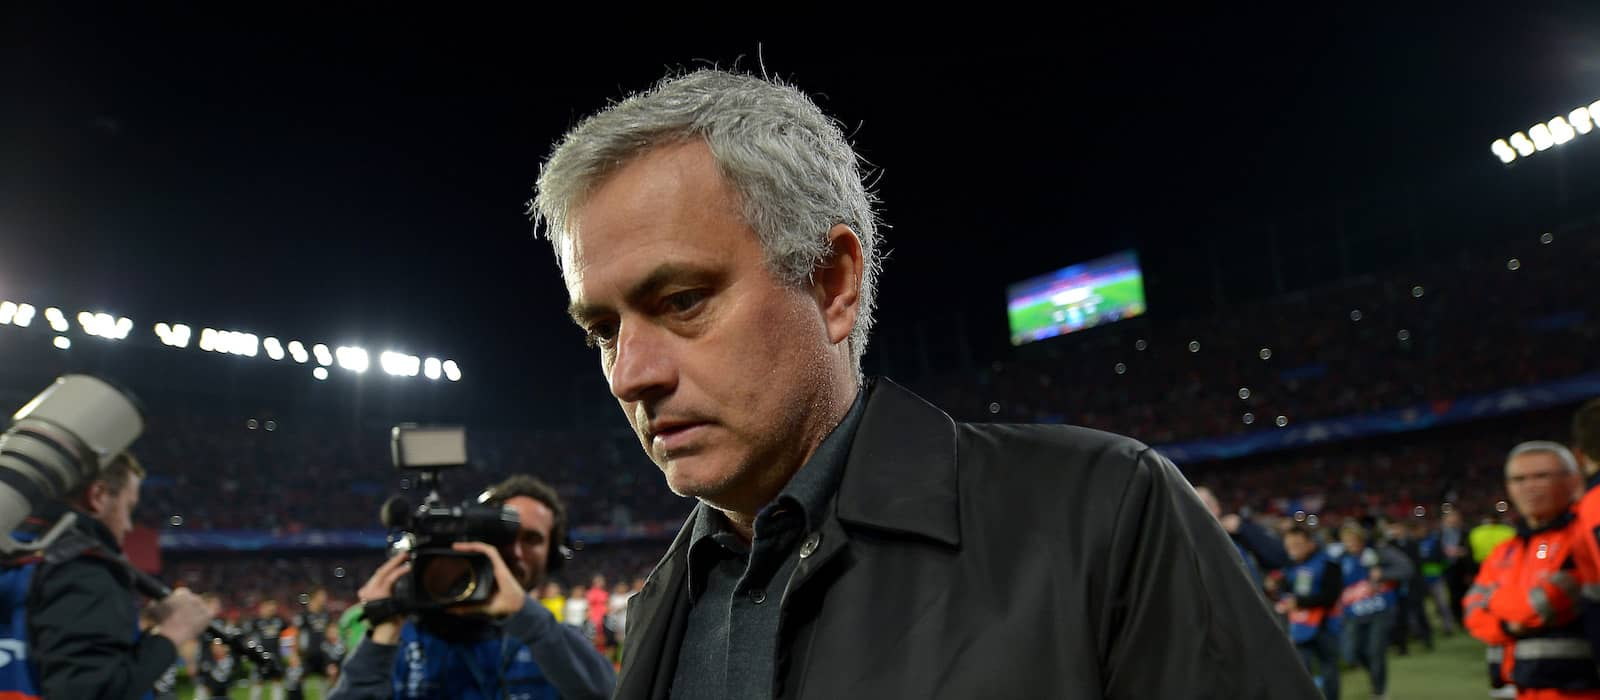 Jose Mourinho slams media for treatment of Manchester United